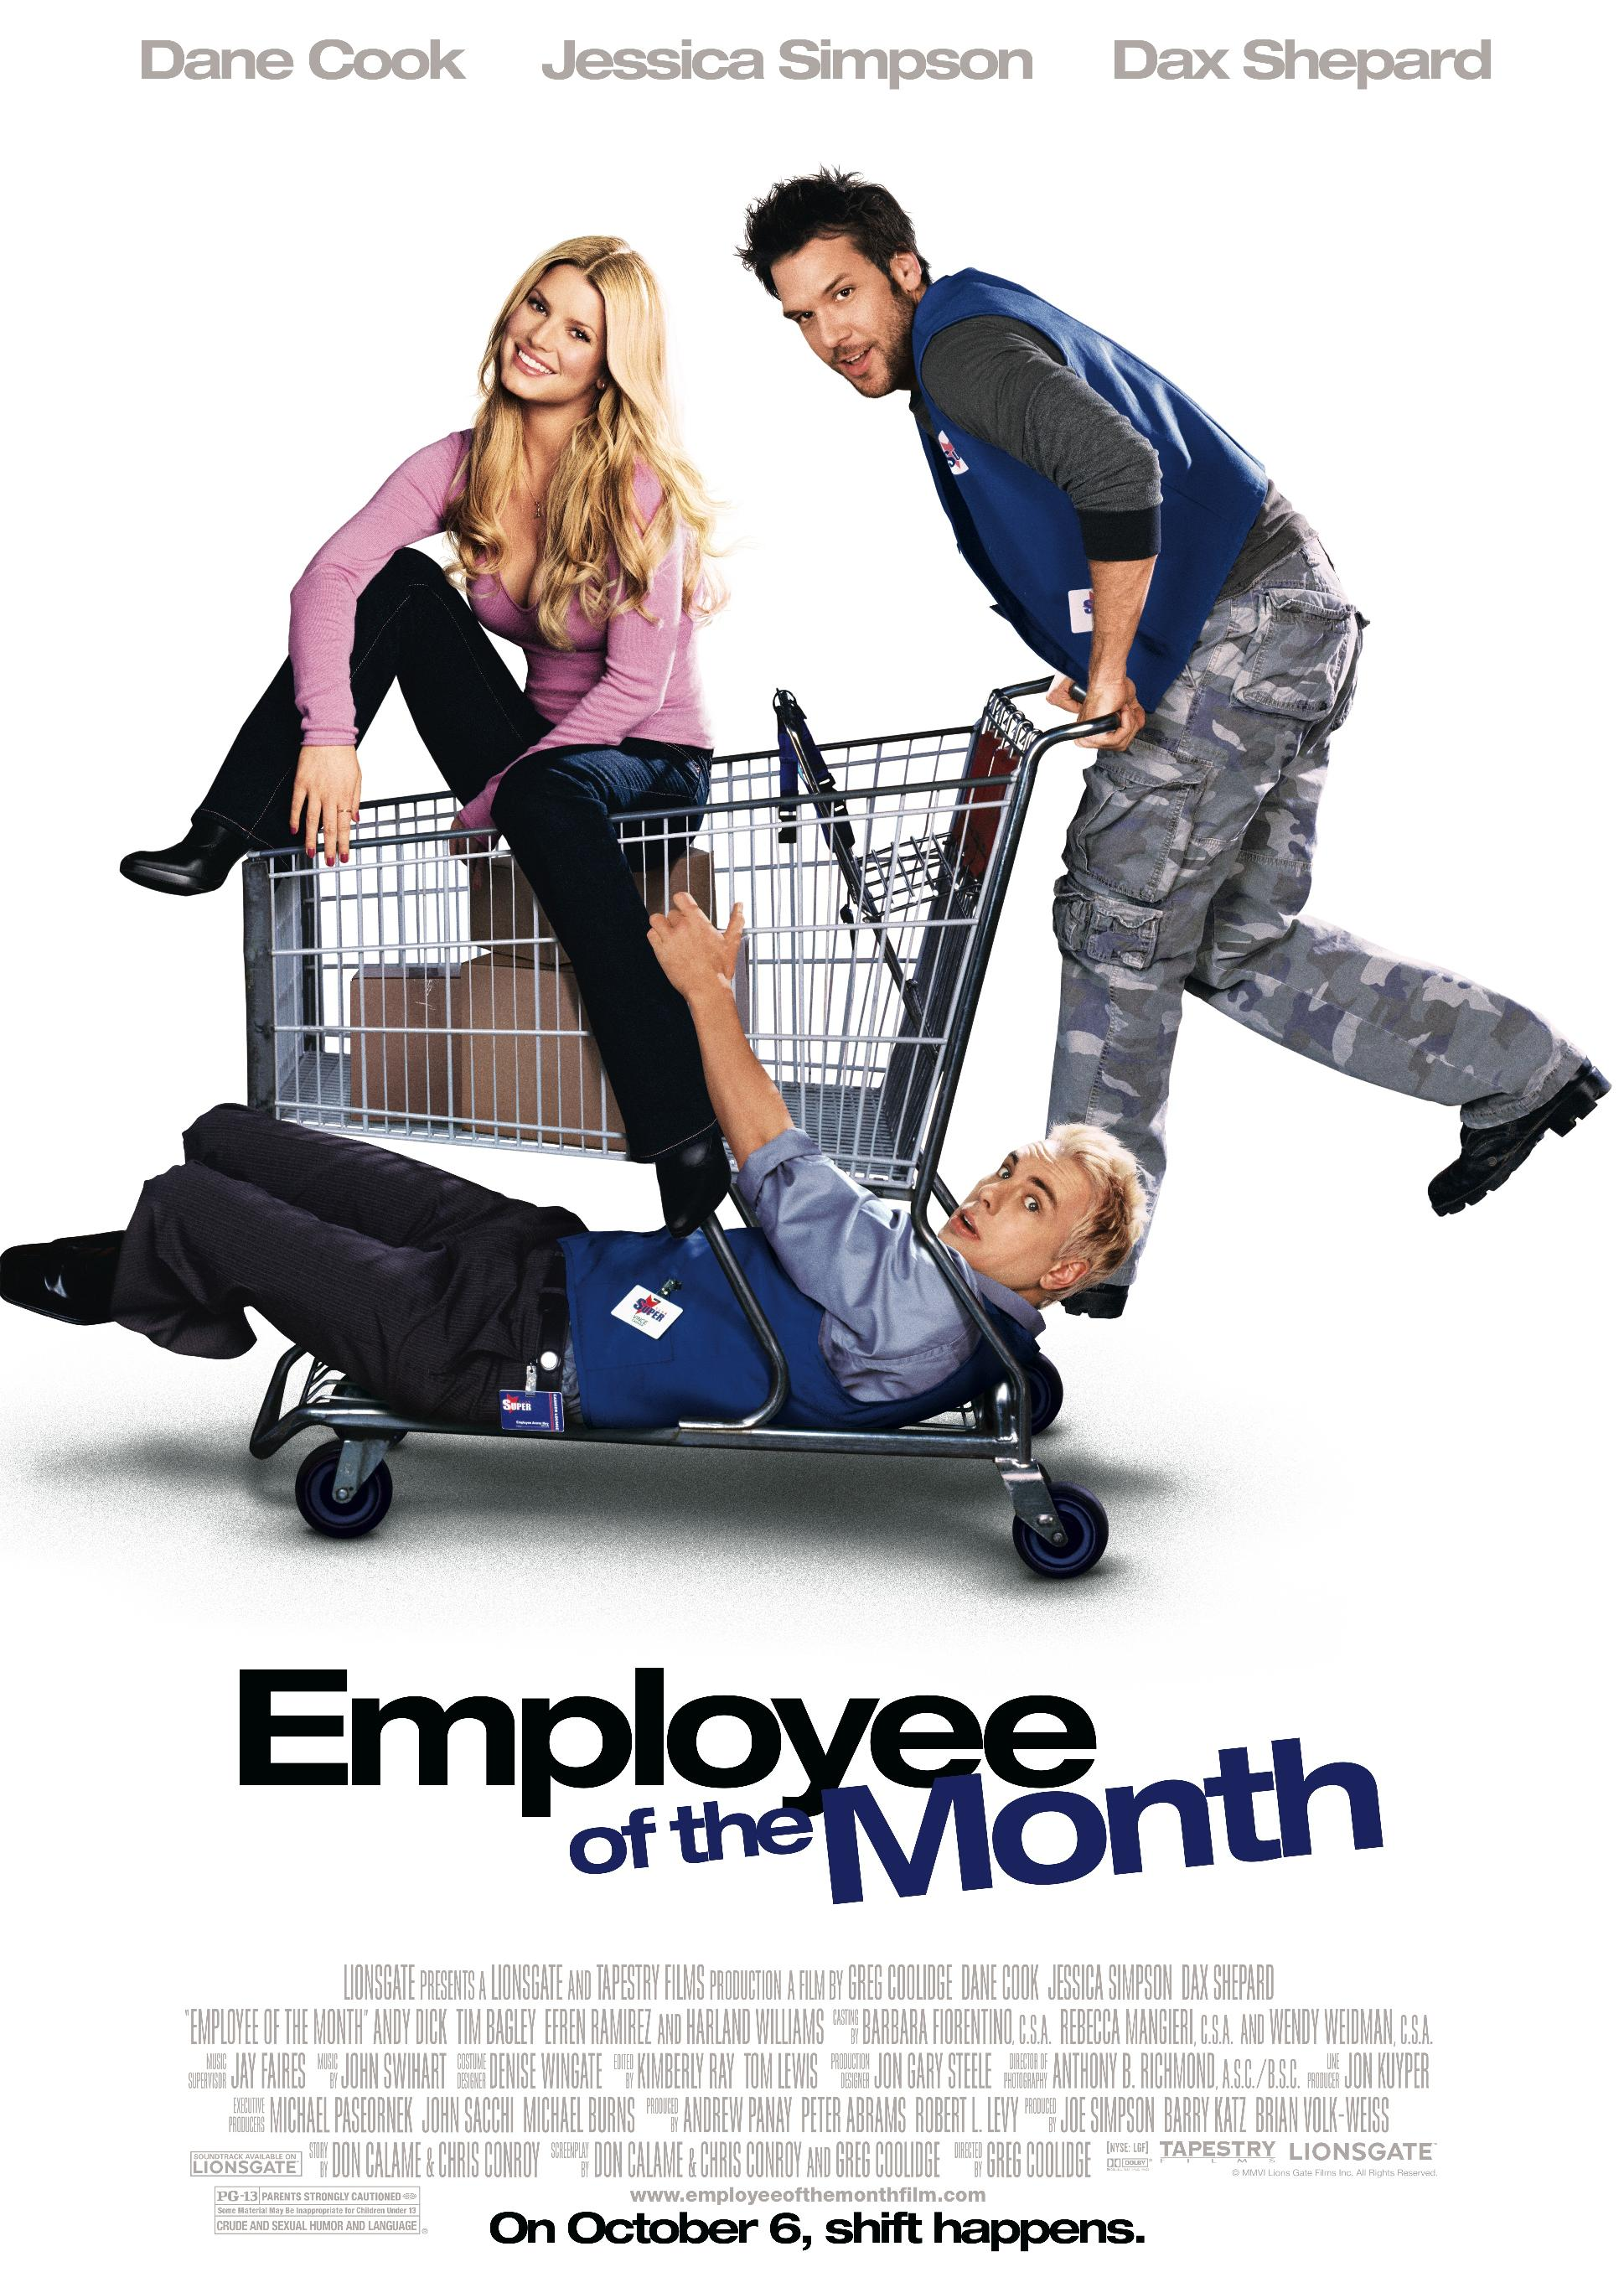 Employtee of the Month_poster.jpg